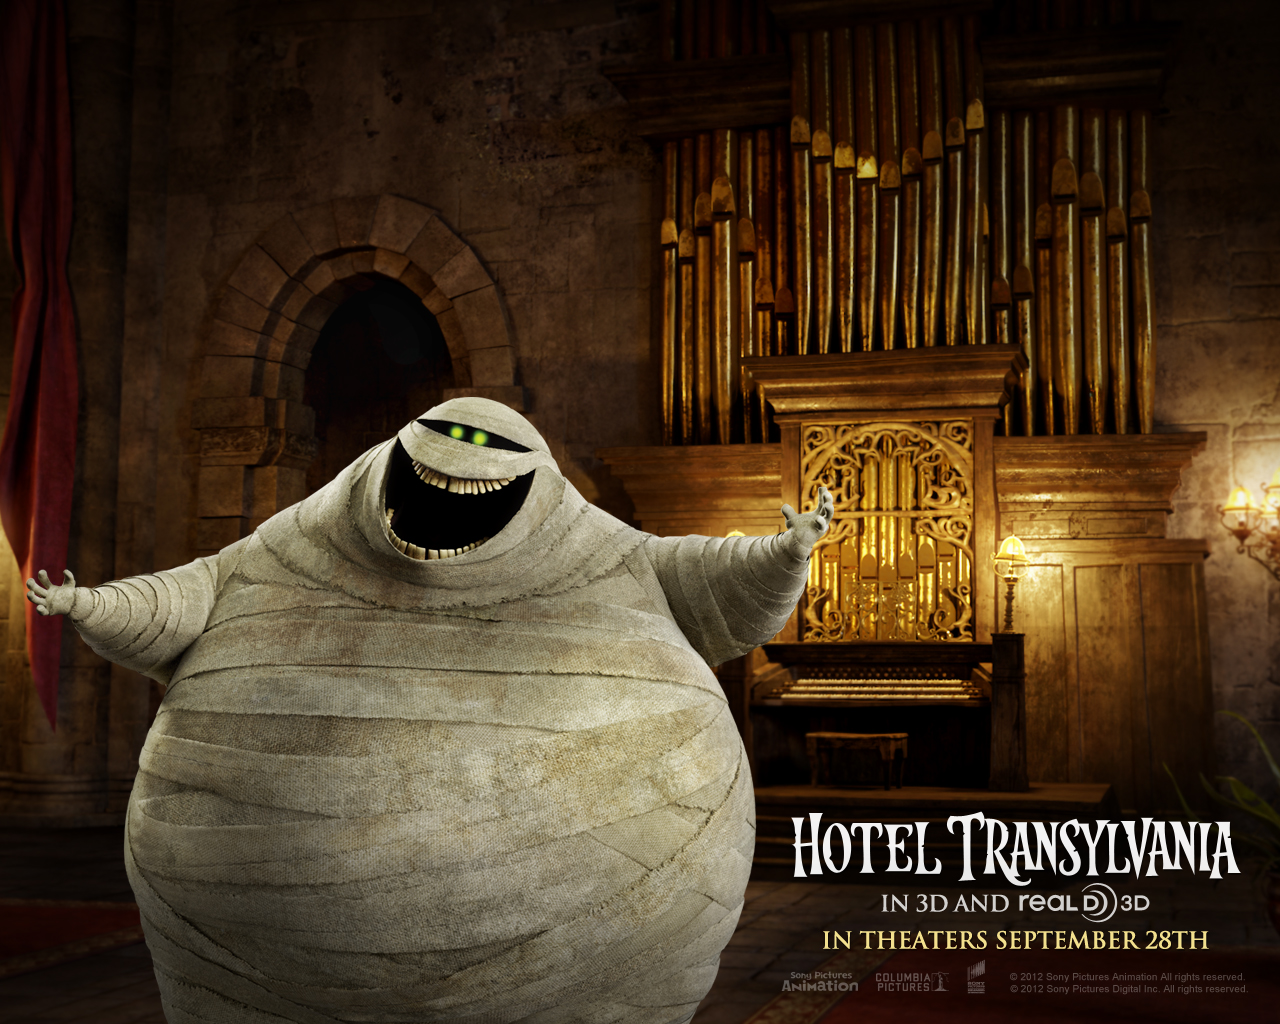 3d Animated Gif Wallpapers Hotel Transylvania Amazing Hd Wallpapers All Hd Wallpapers